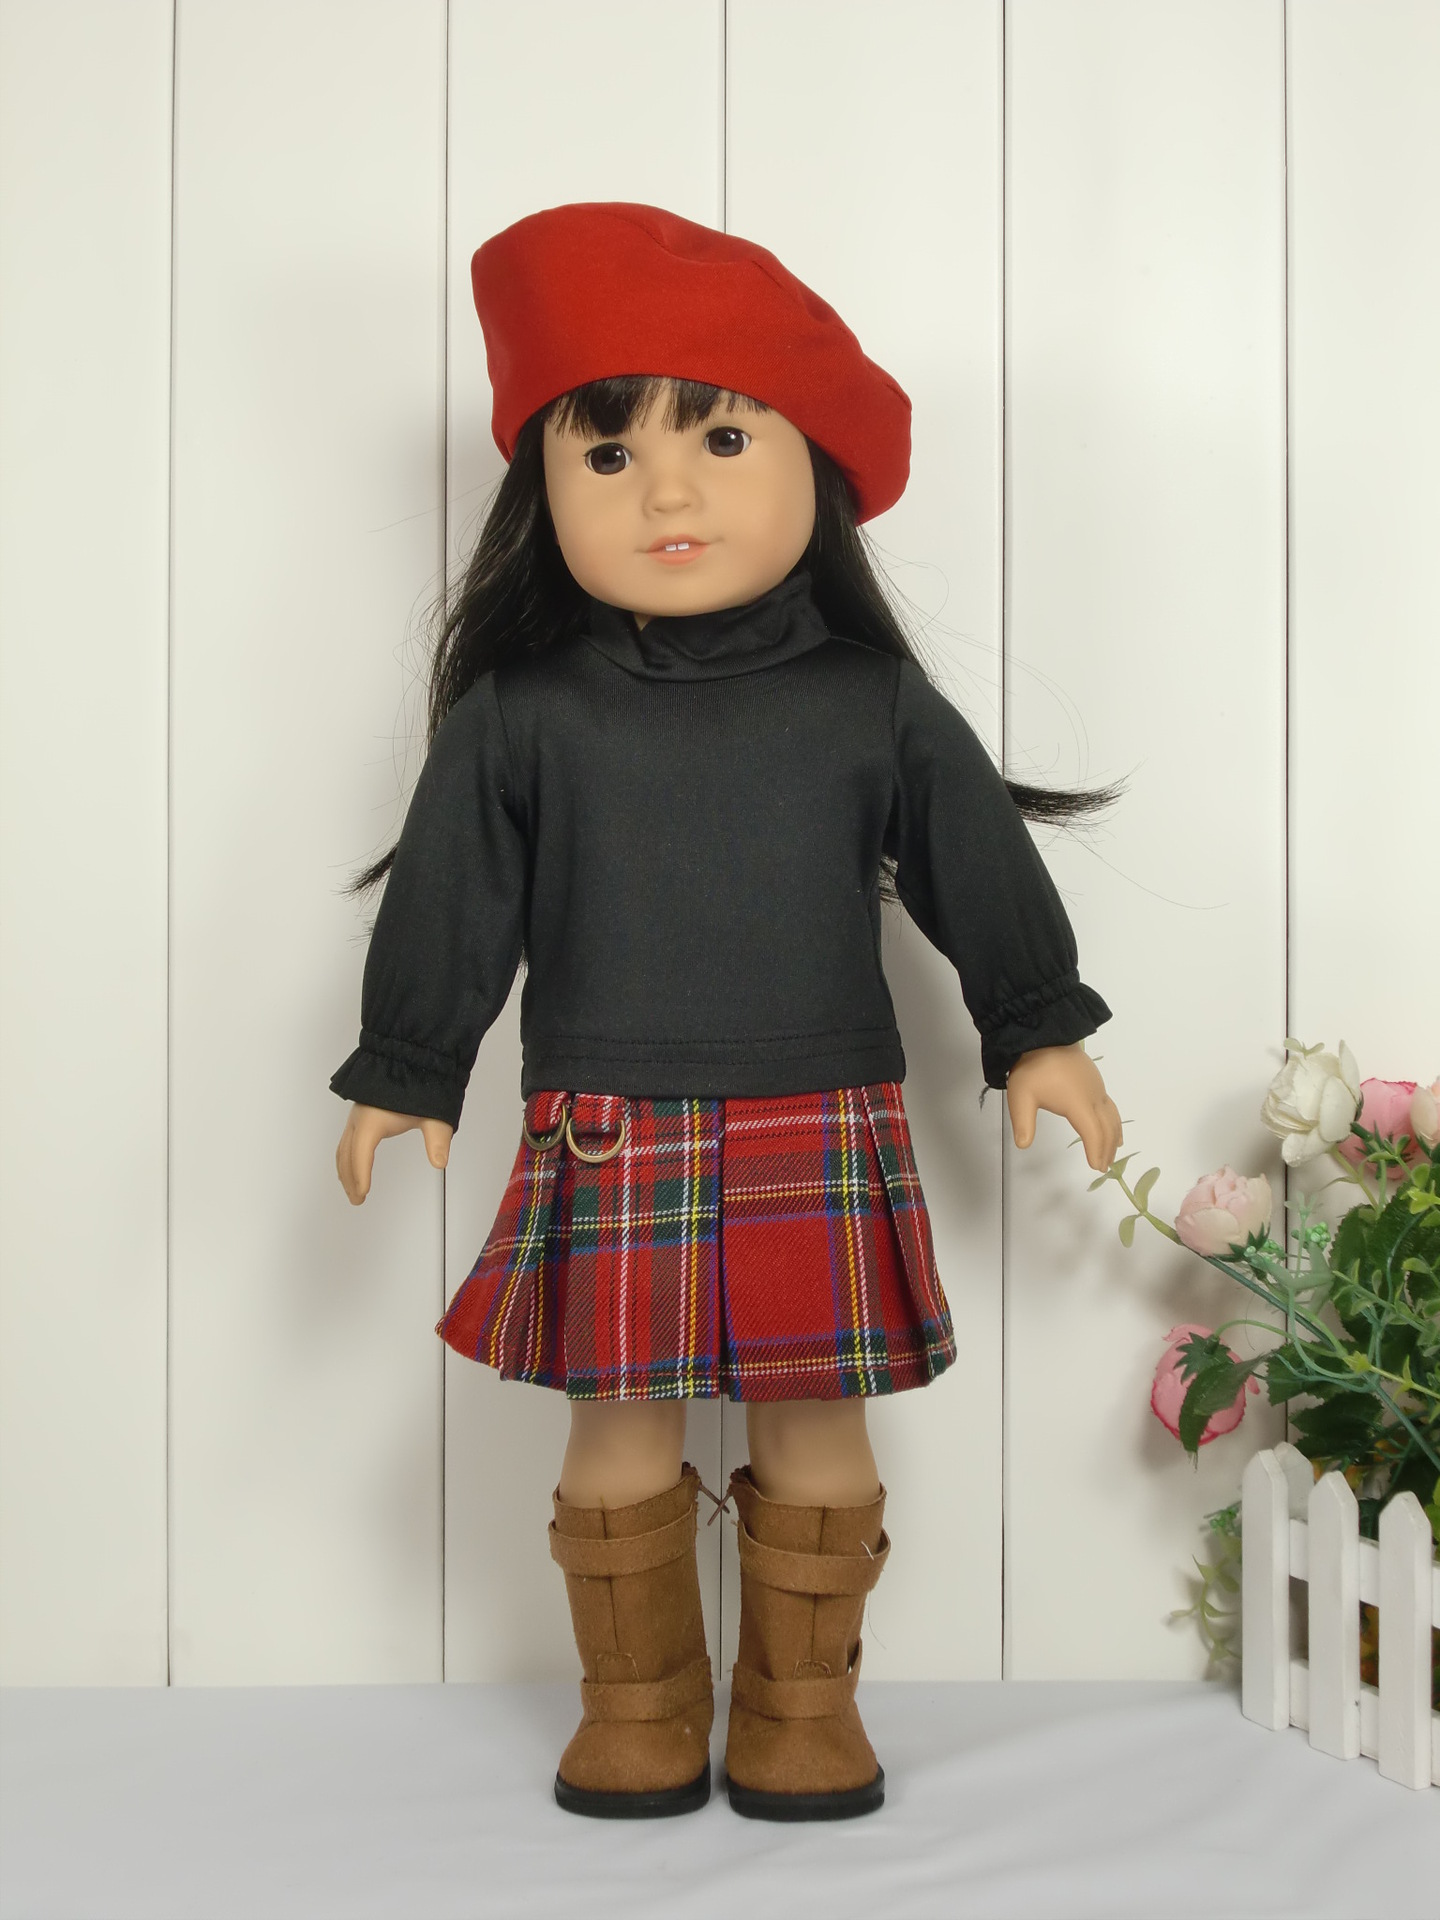 3pcs / set 1hat + 1 skjorte +1 Dress The Scotland Dress Suit For 18 Tommers American Girl Doll 45cm Doll Tilbehør